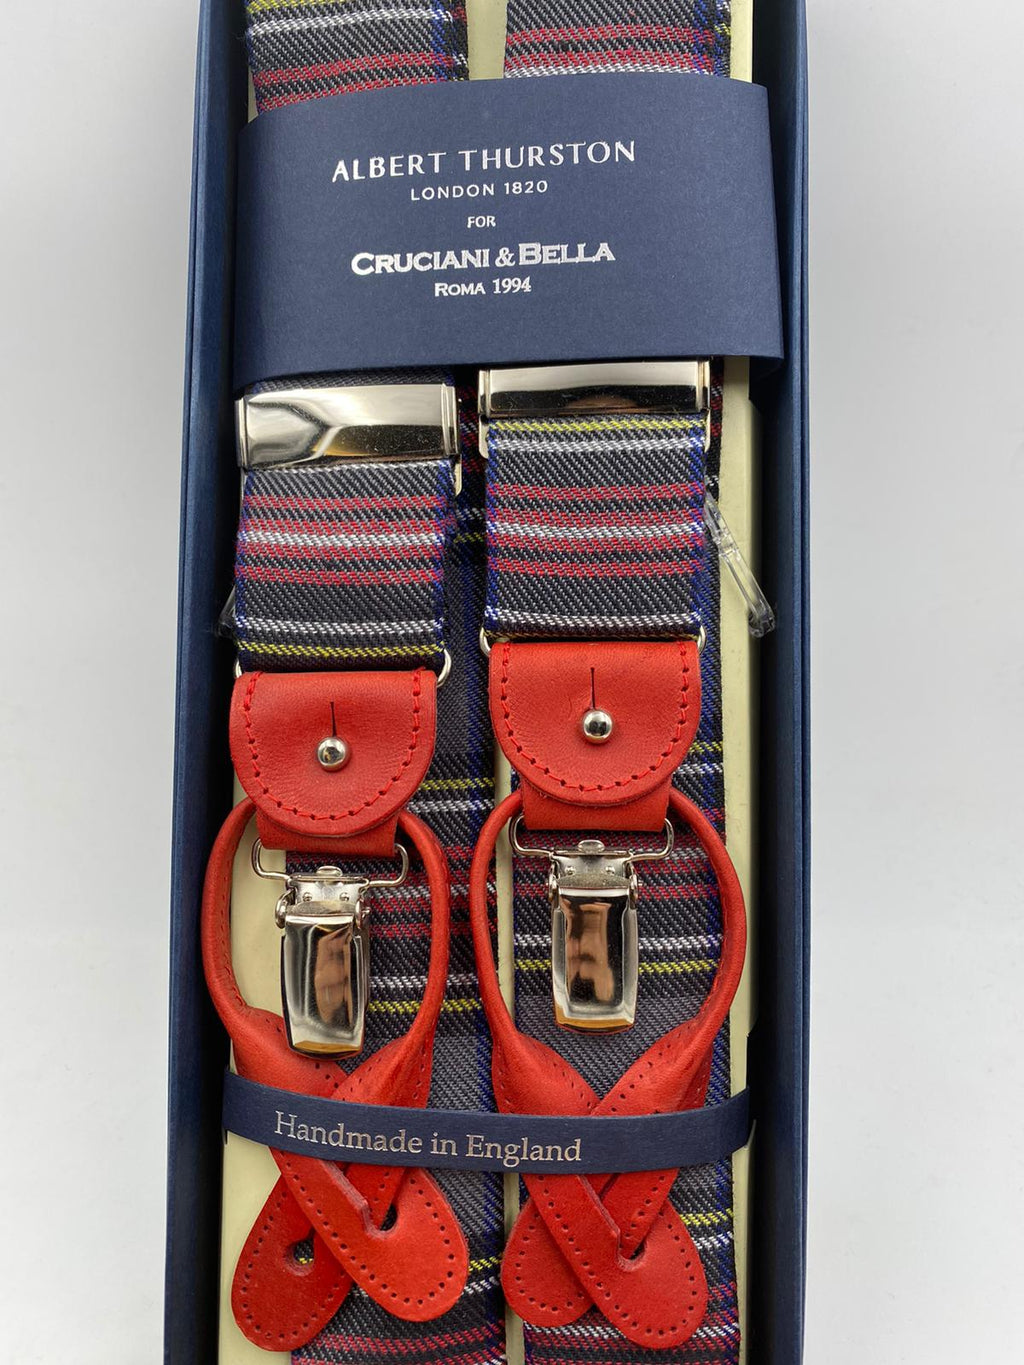 Albert Thurston for Cruciani & Bella Made in England 2 in 1 Adjustable Sizing 40 mm wool braces Grey Background and Multicolor Stripes Y-Shaped Nickel Fittings Size: L #1192